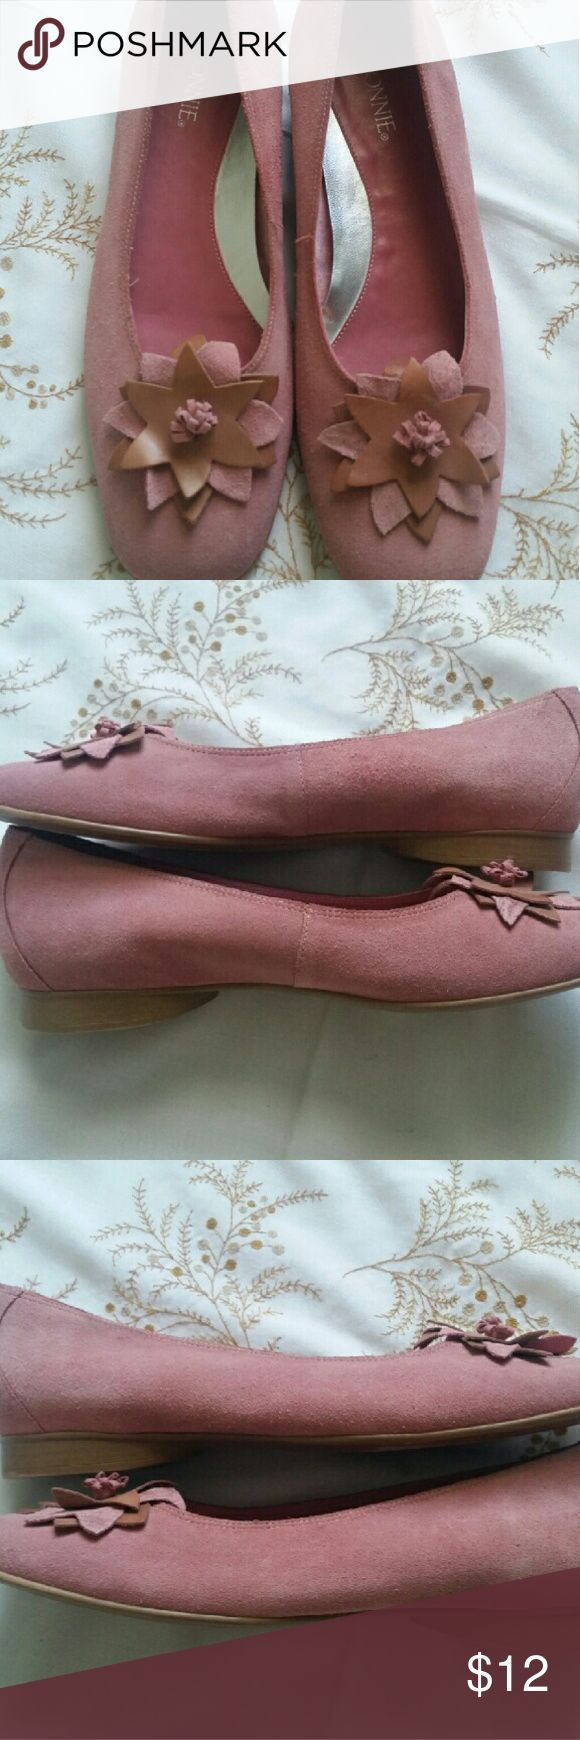 Connie shoes pink Sz 10M floral Ballet flats My pictures are my description   Please feel free to contact me with any questions, concerns or additional pictures   Items are shipped Mondays, Wednesdays and Fridays   Thanks for stopping by Connie  Shoes Flats & Loafers